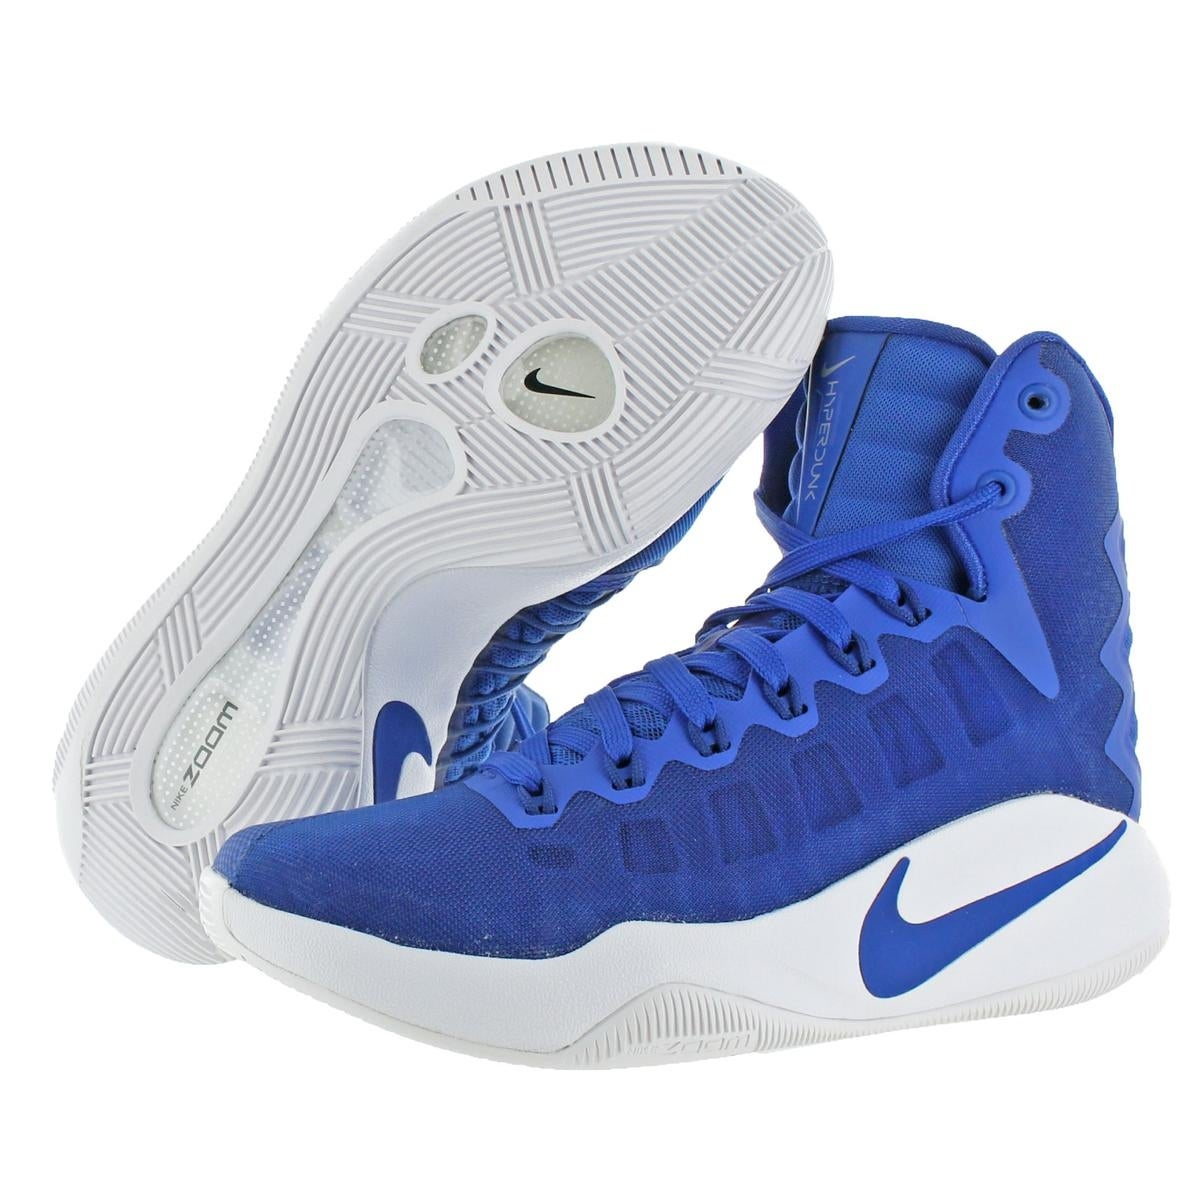 Shop Nike Womens Hyperdunk 2016 TB Basketball Shoes Nike Zoom Mid Top -  Free Shipping Today - Overstock - 21803225 a087c38b3